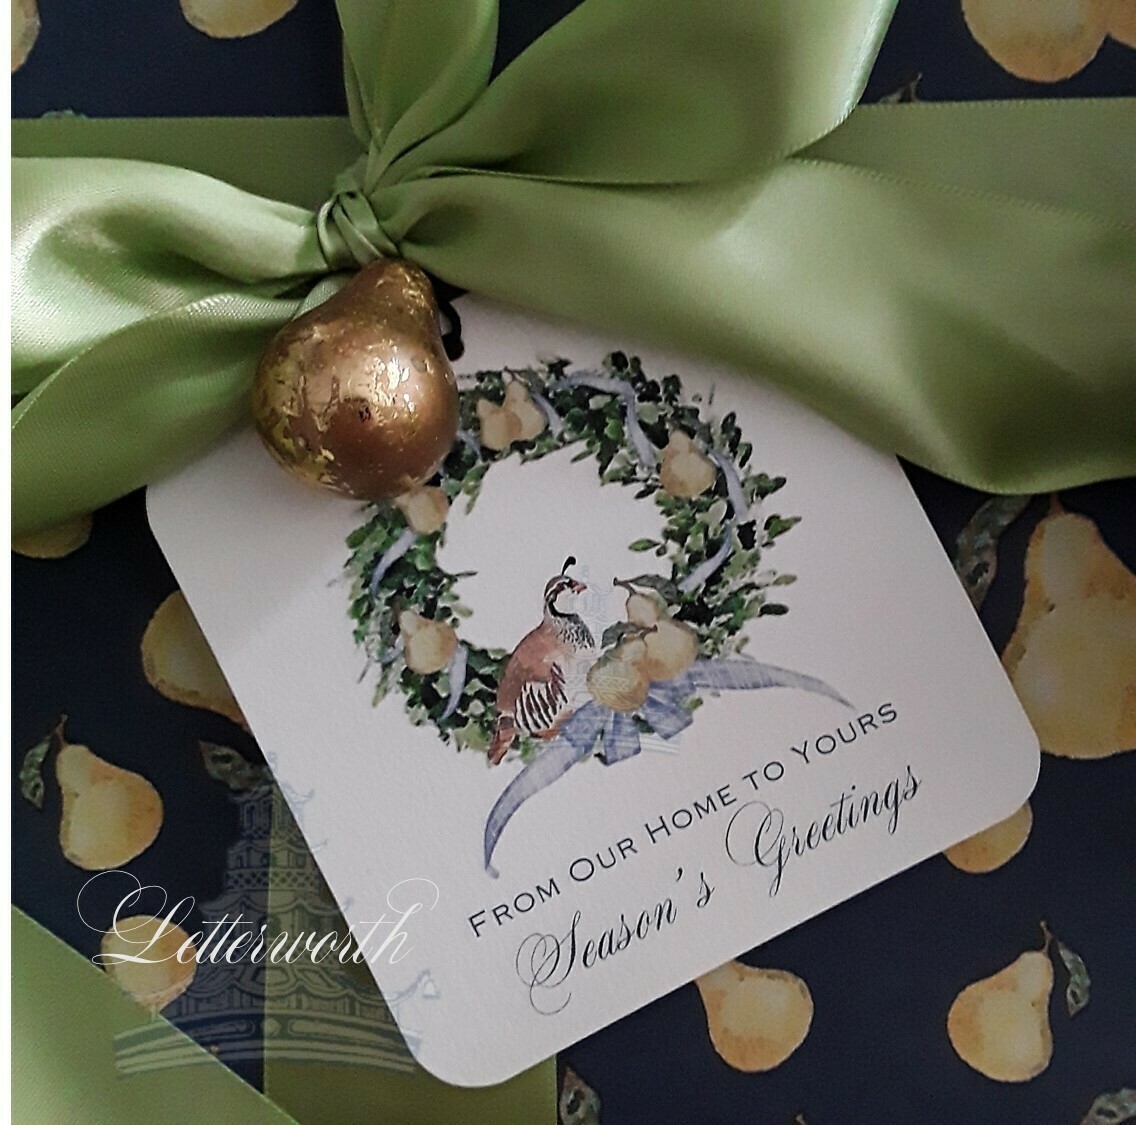 Partridge and Pear Wreath Holiday Gift Tags by Letterworth (Set of 12)